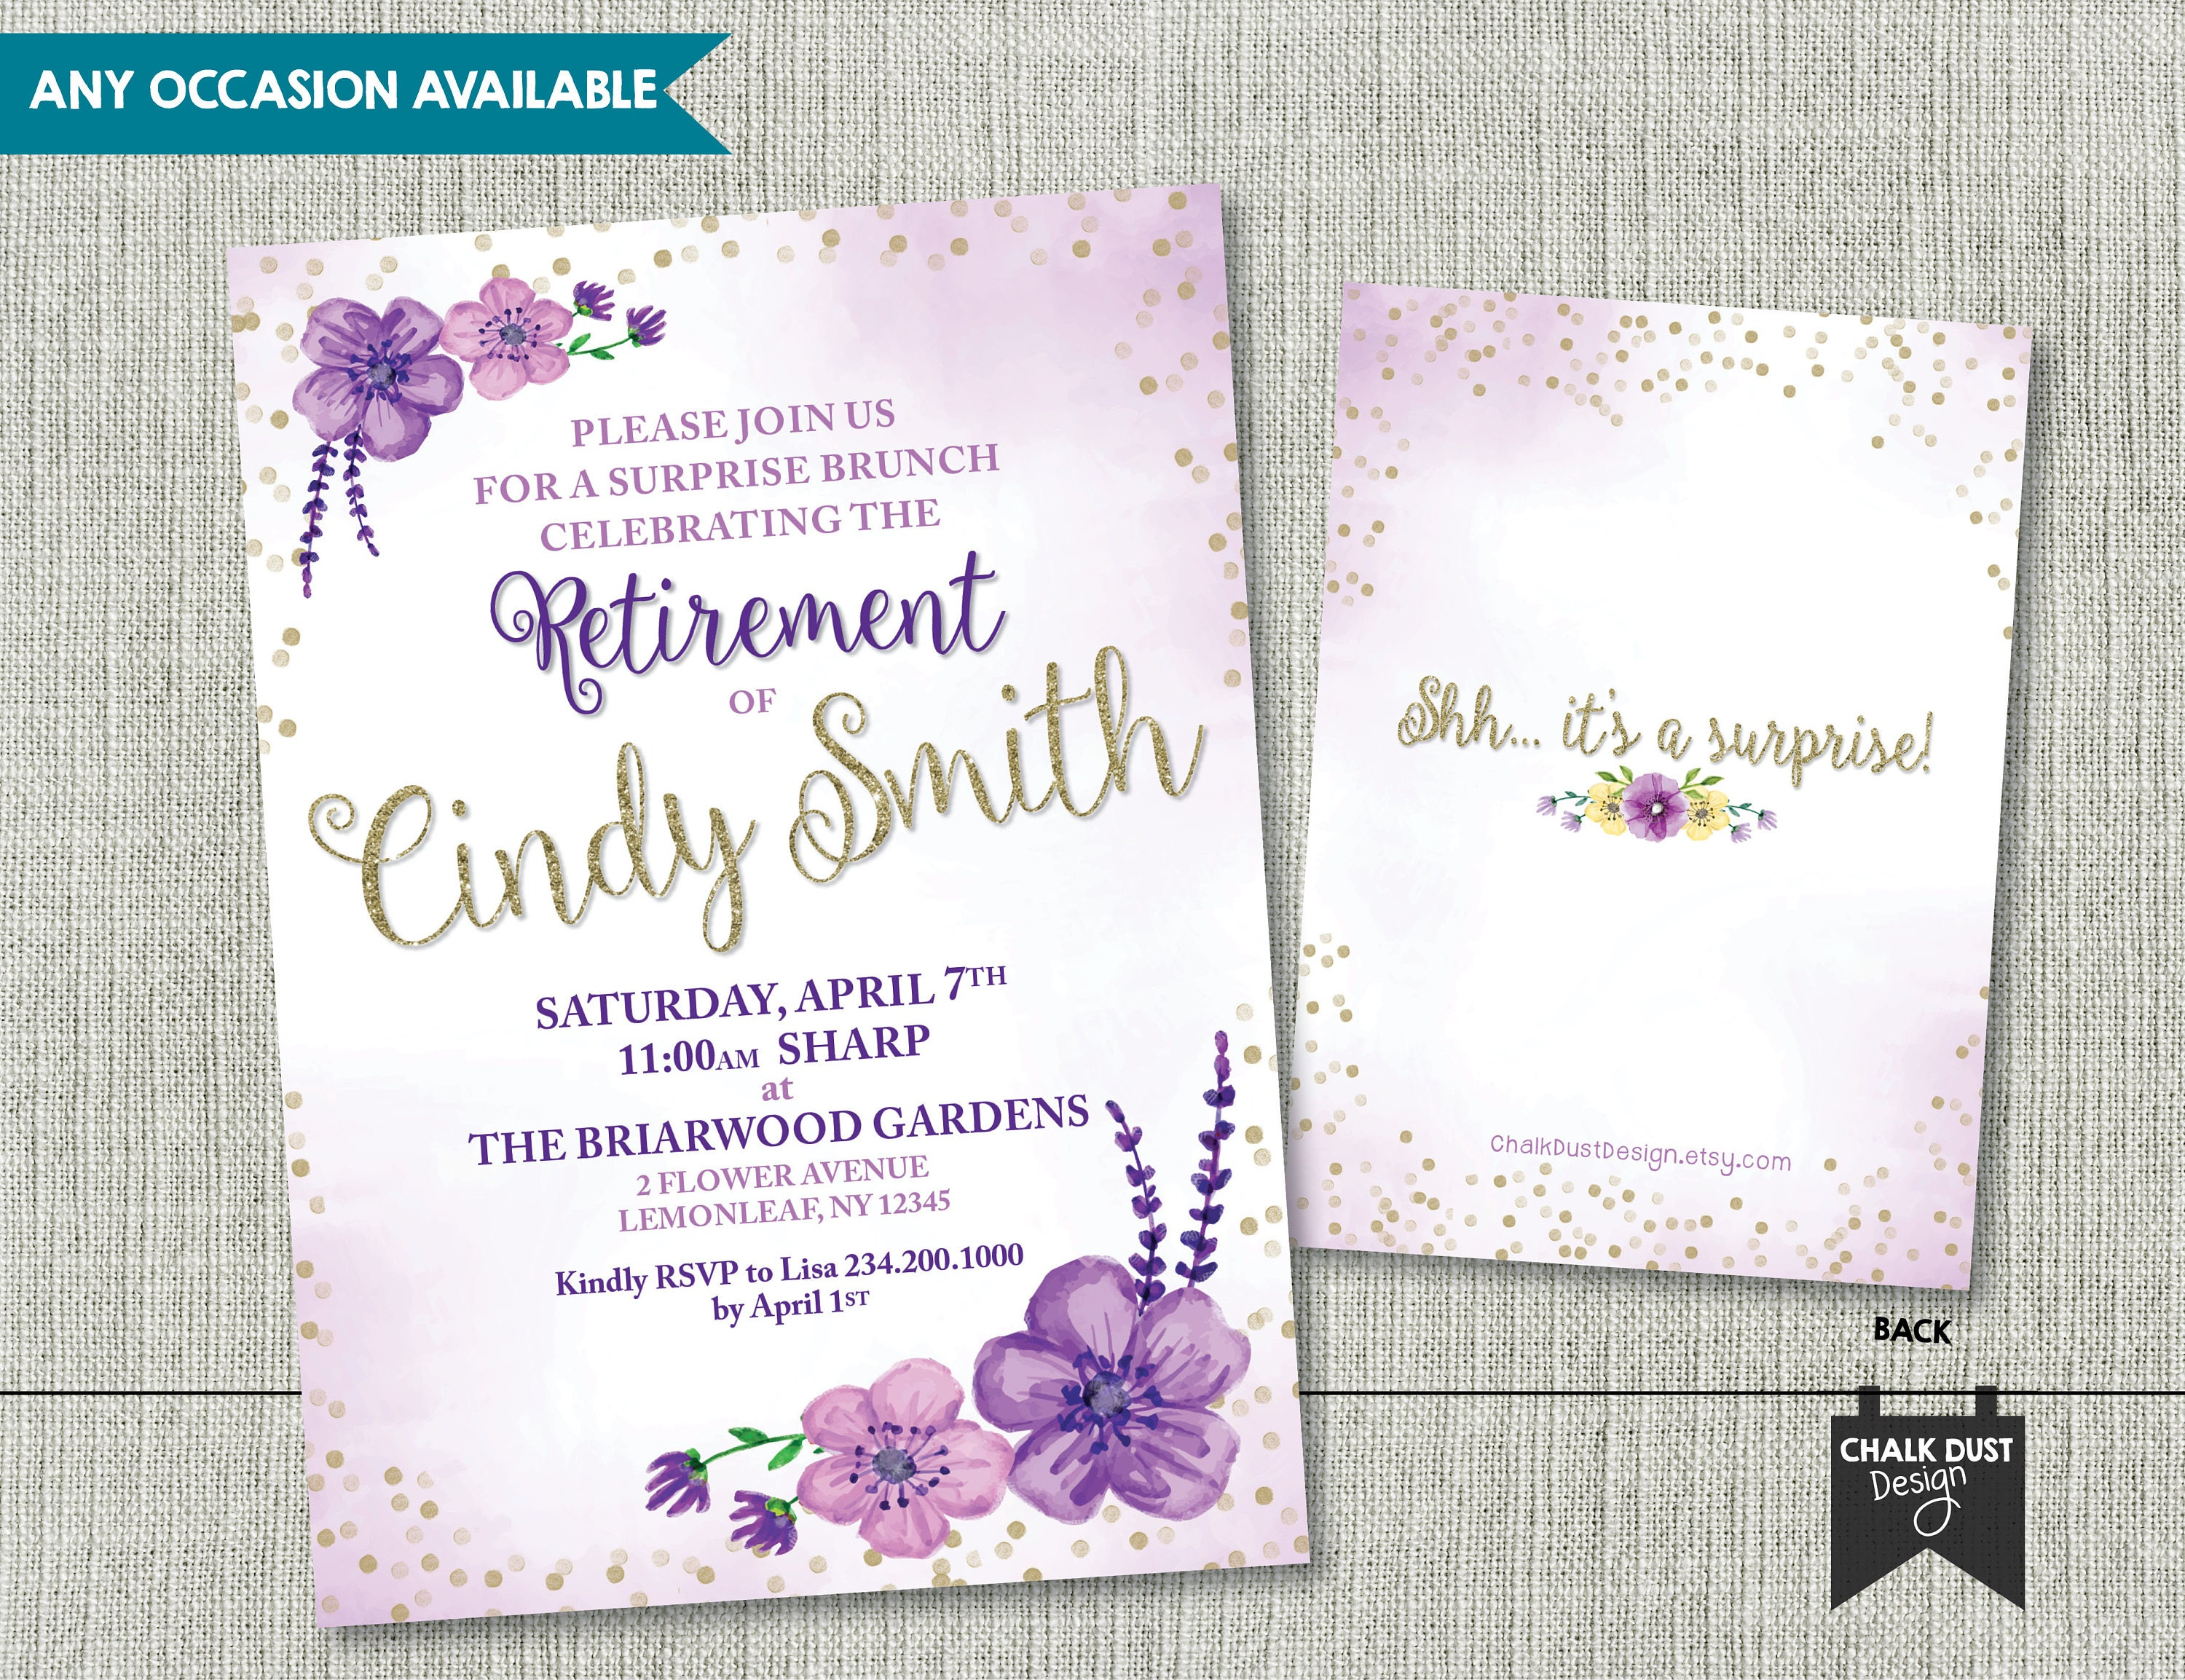 Custom watercolor floral design invitations. Any occasion and